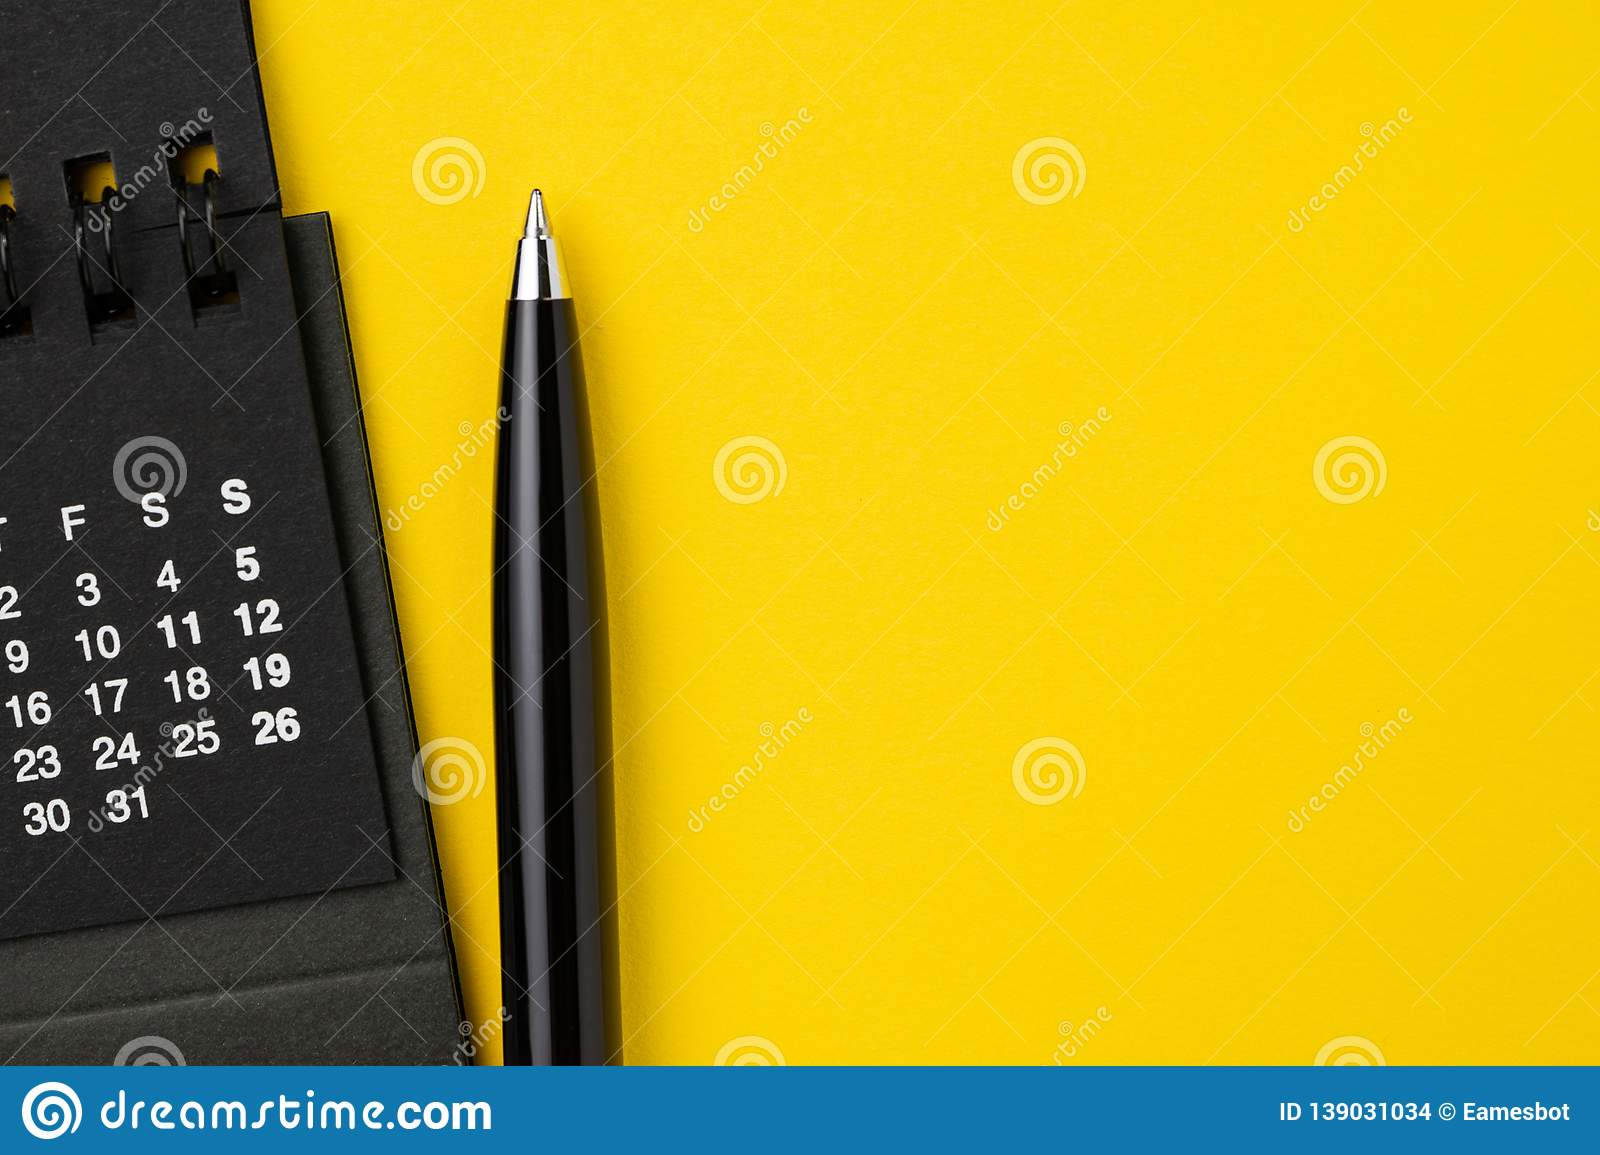 Flat lay of black calendar with white numbers with pen on solid yellow background using for business appointment, schedule and